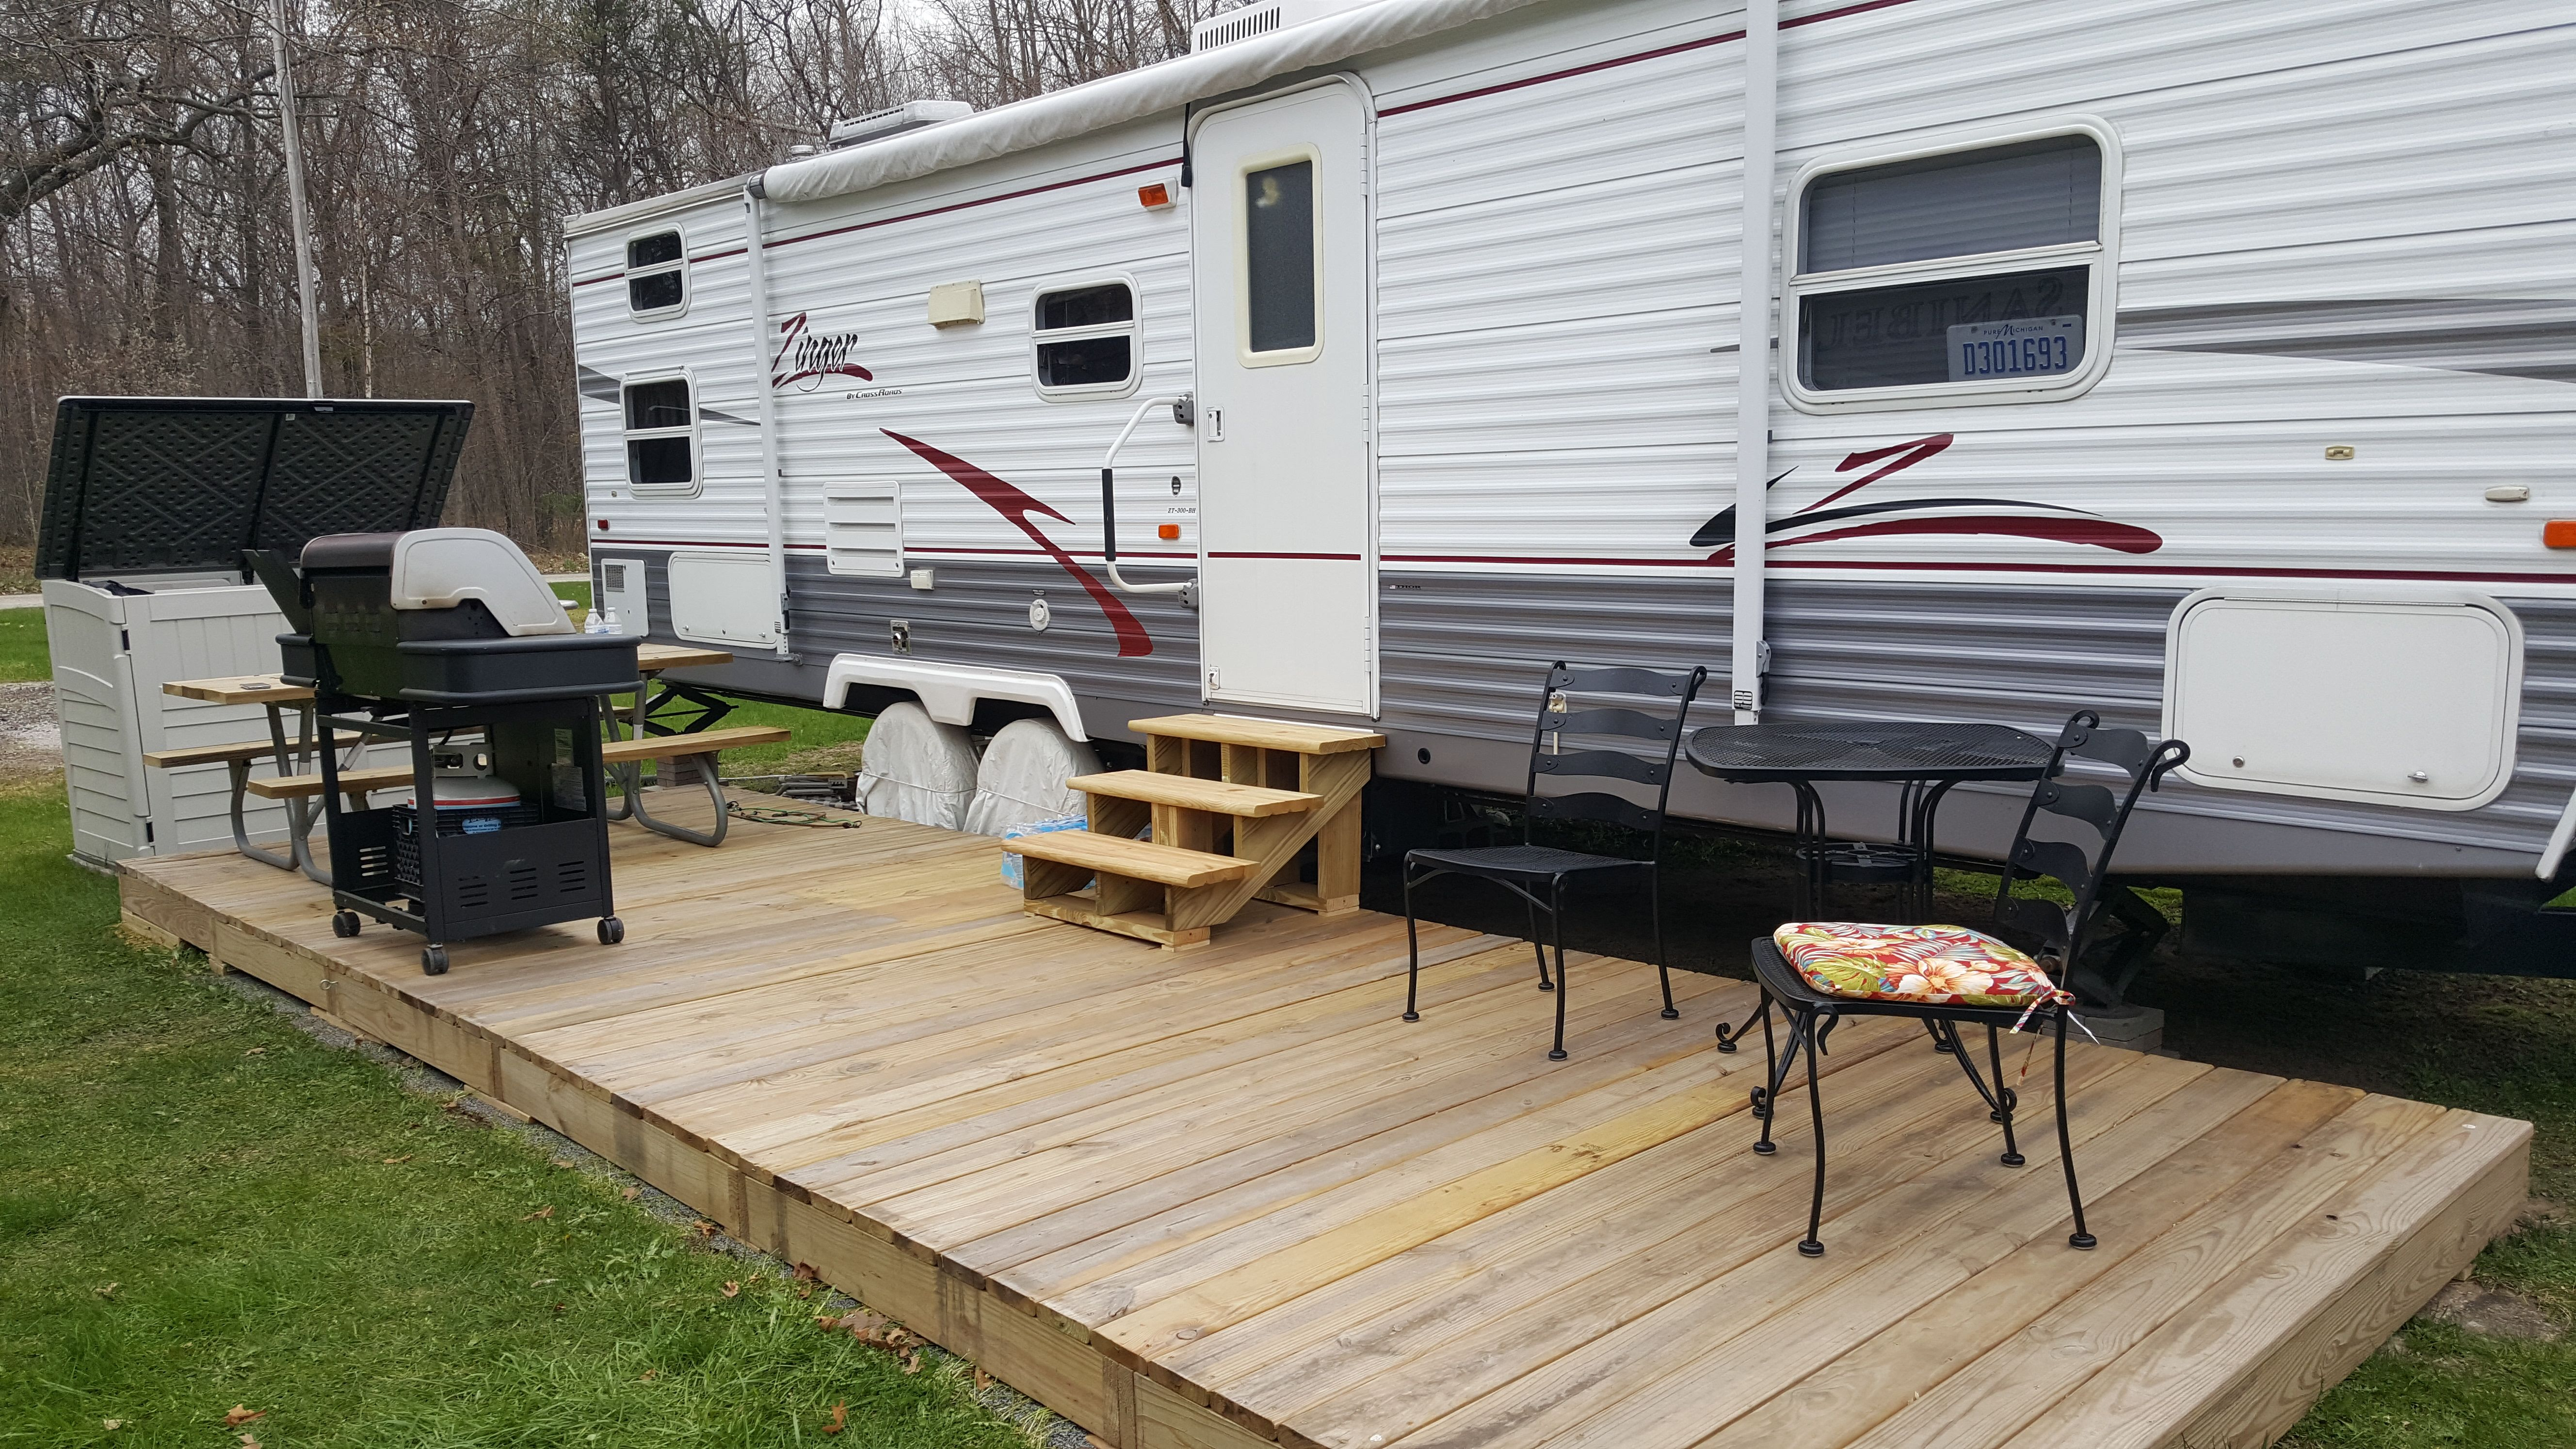 Pin by Sarah Roan Duncan on Camper Redecorating (With